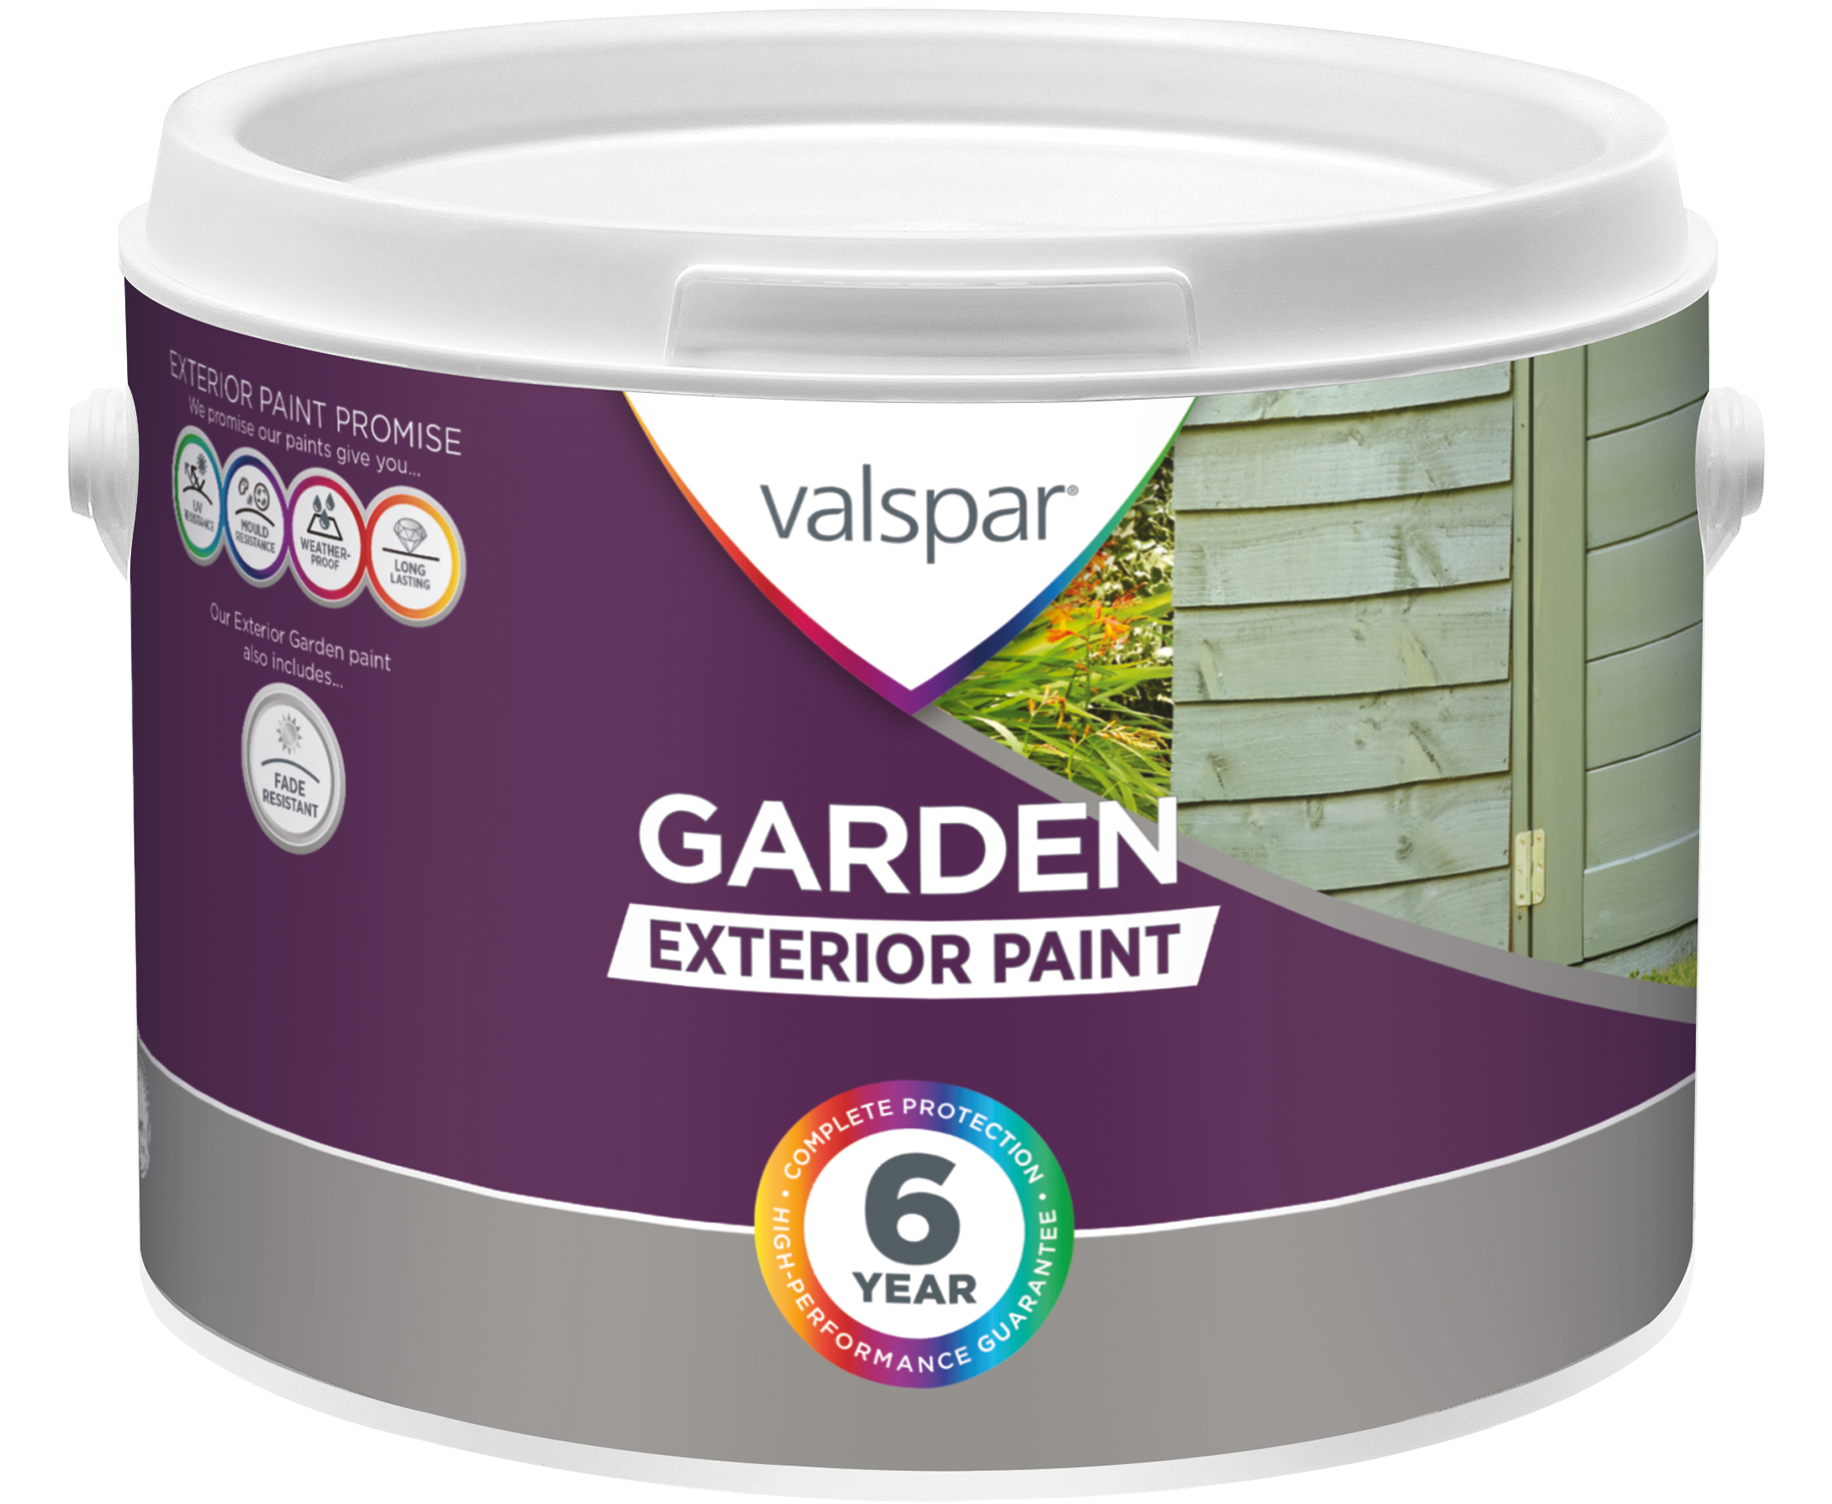 FOUNDED ON OUR EXTERIOR PAINT PROMISE, VALSPAR® GARDEN PAINT IS A FADE  RESISTANT COATING PERFECT FOR ADDING A NEW LEASE OF LIFE TO SHEDS, FENCES,  ...